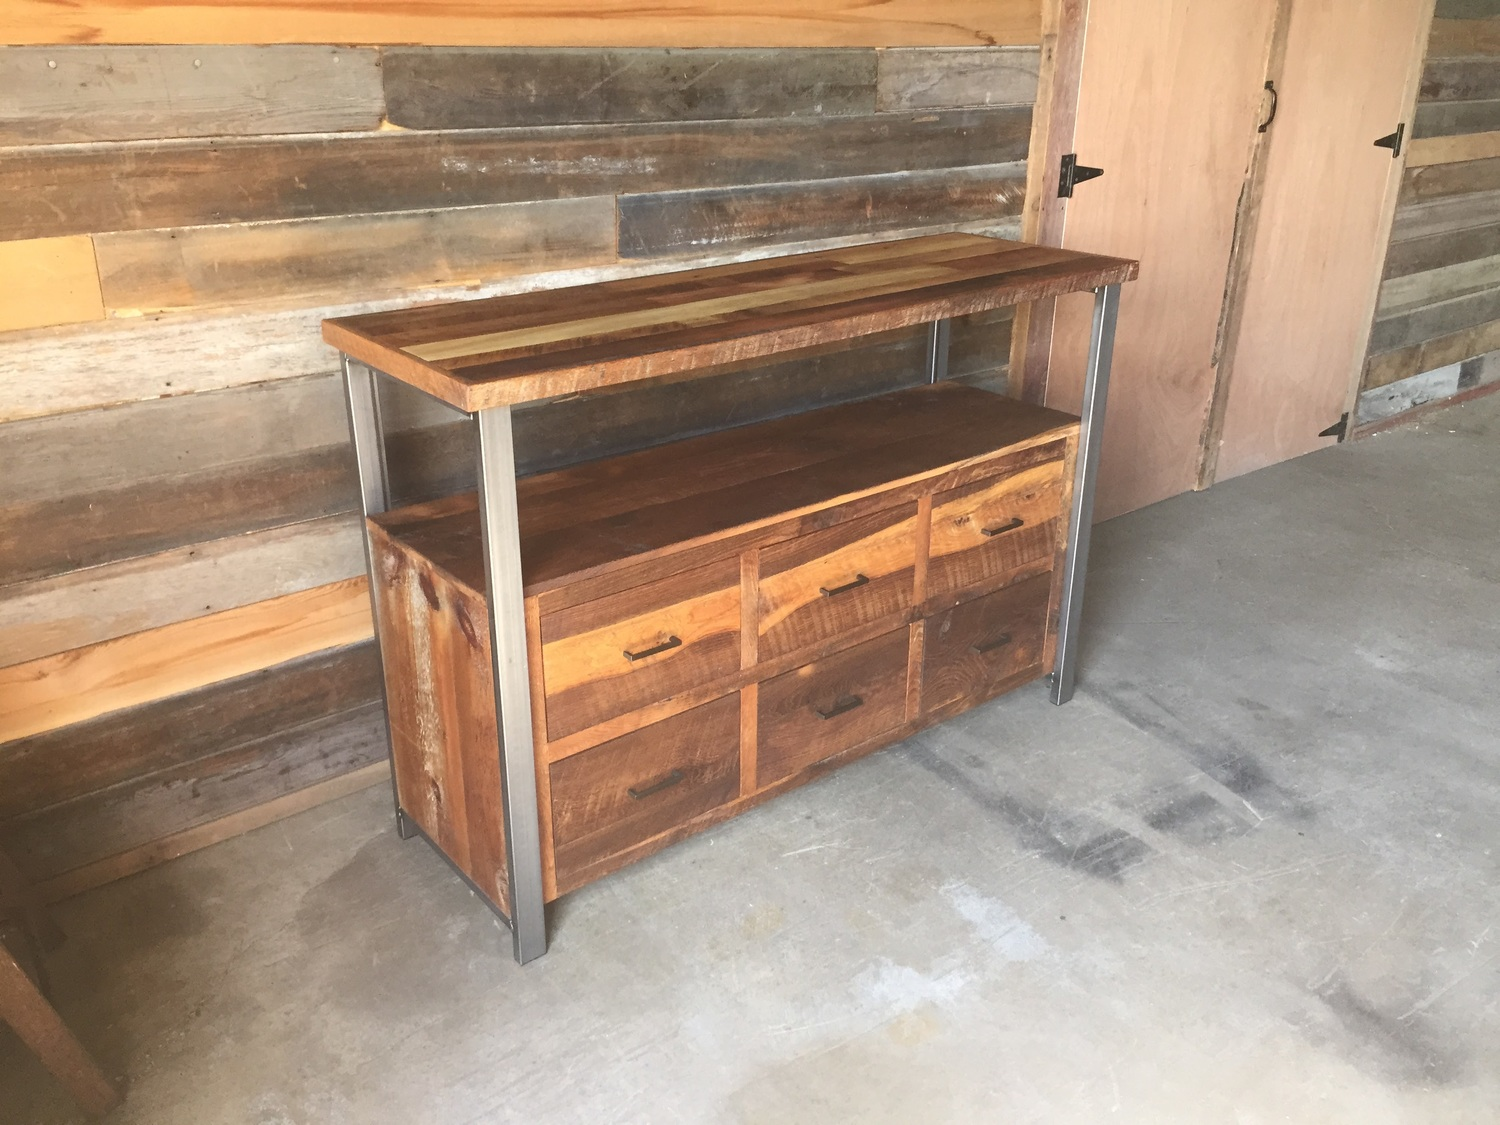 media console reclaimed wood shelving 3 storage book shelf from roughsawn old growth fir and recycled steel three shelf option